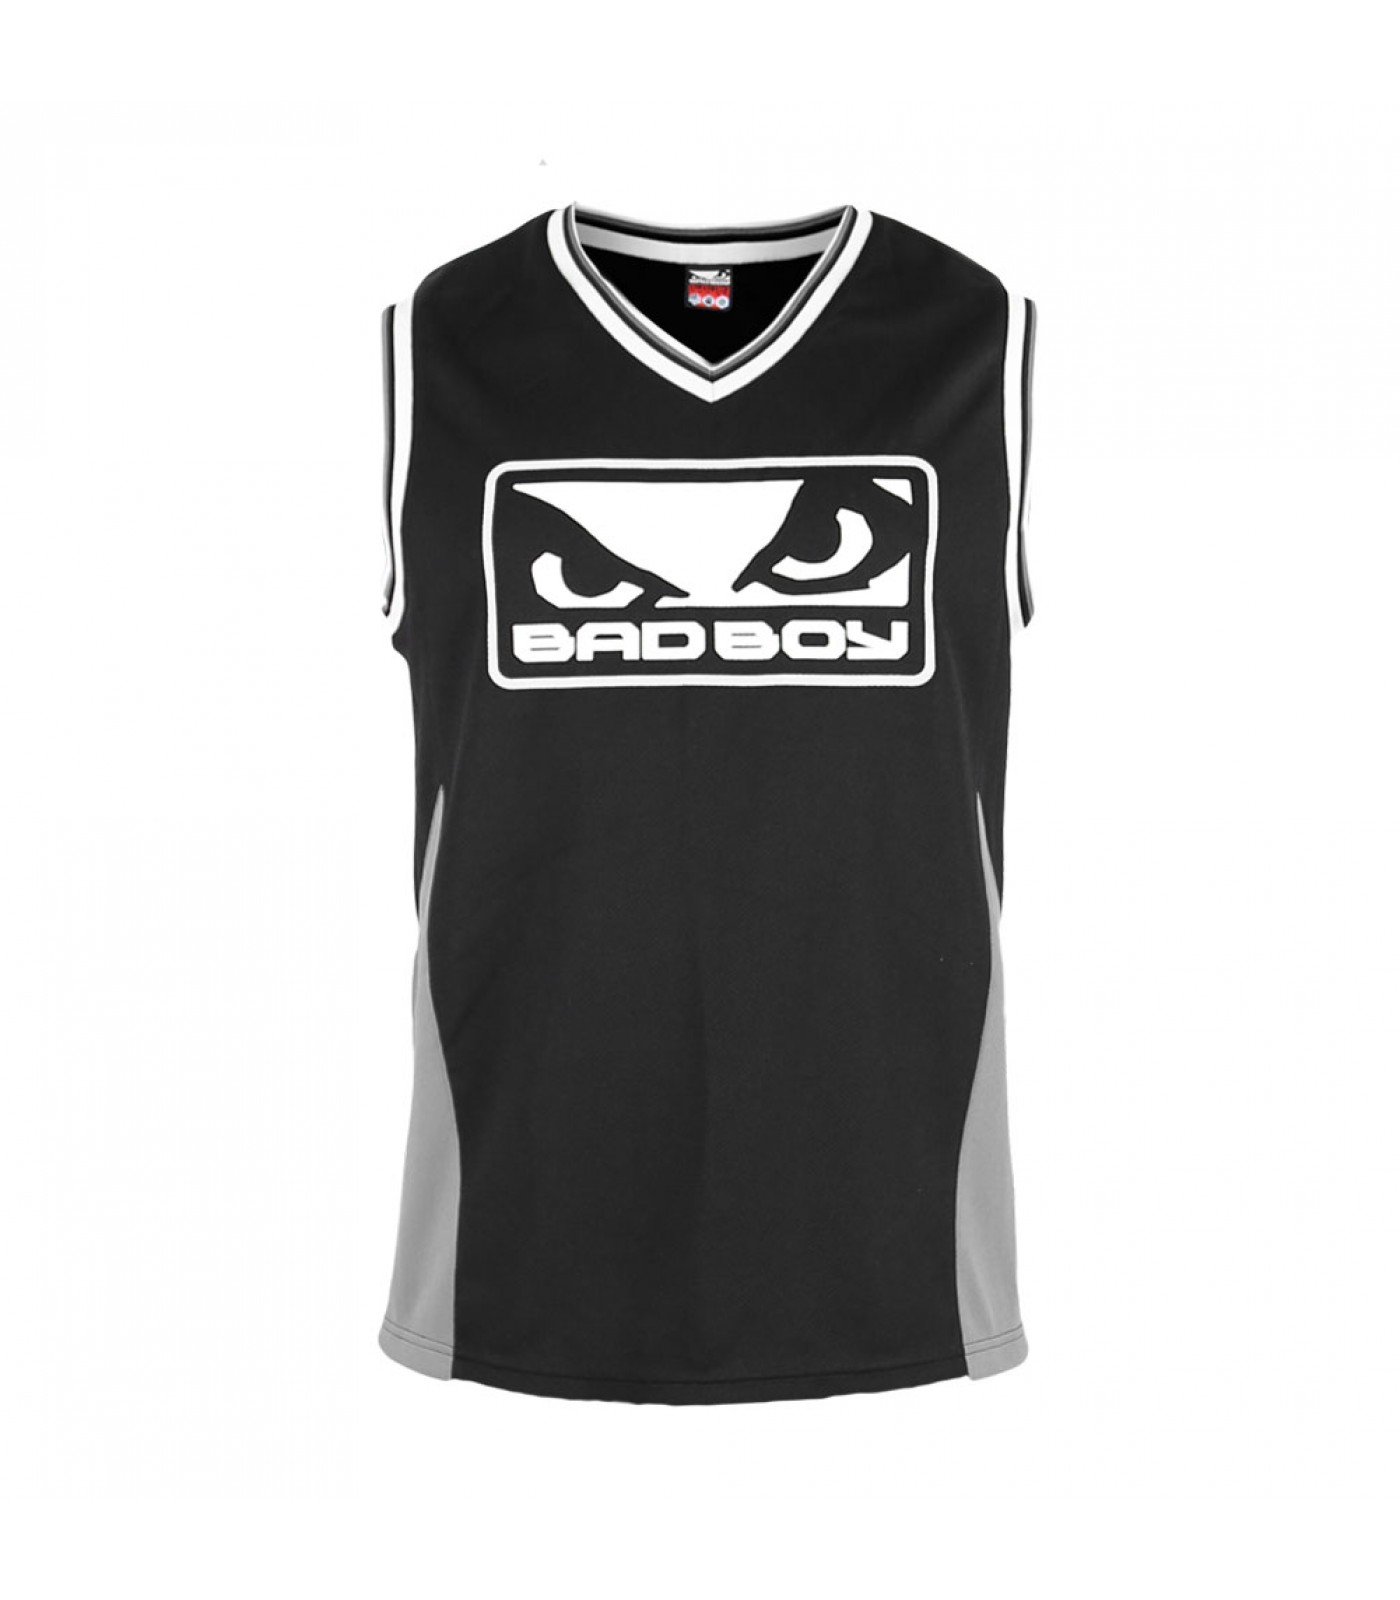 Потник - BAD BOY ICON JERSEY / BLACK-GREY​